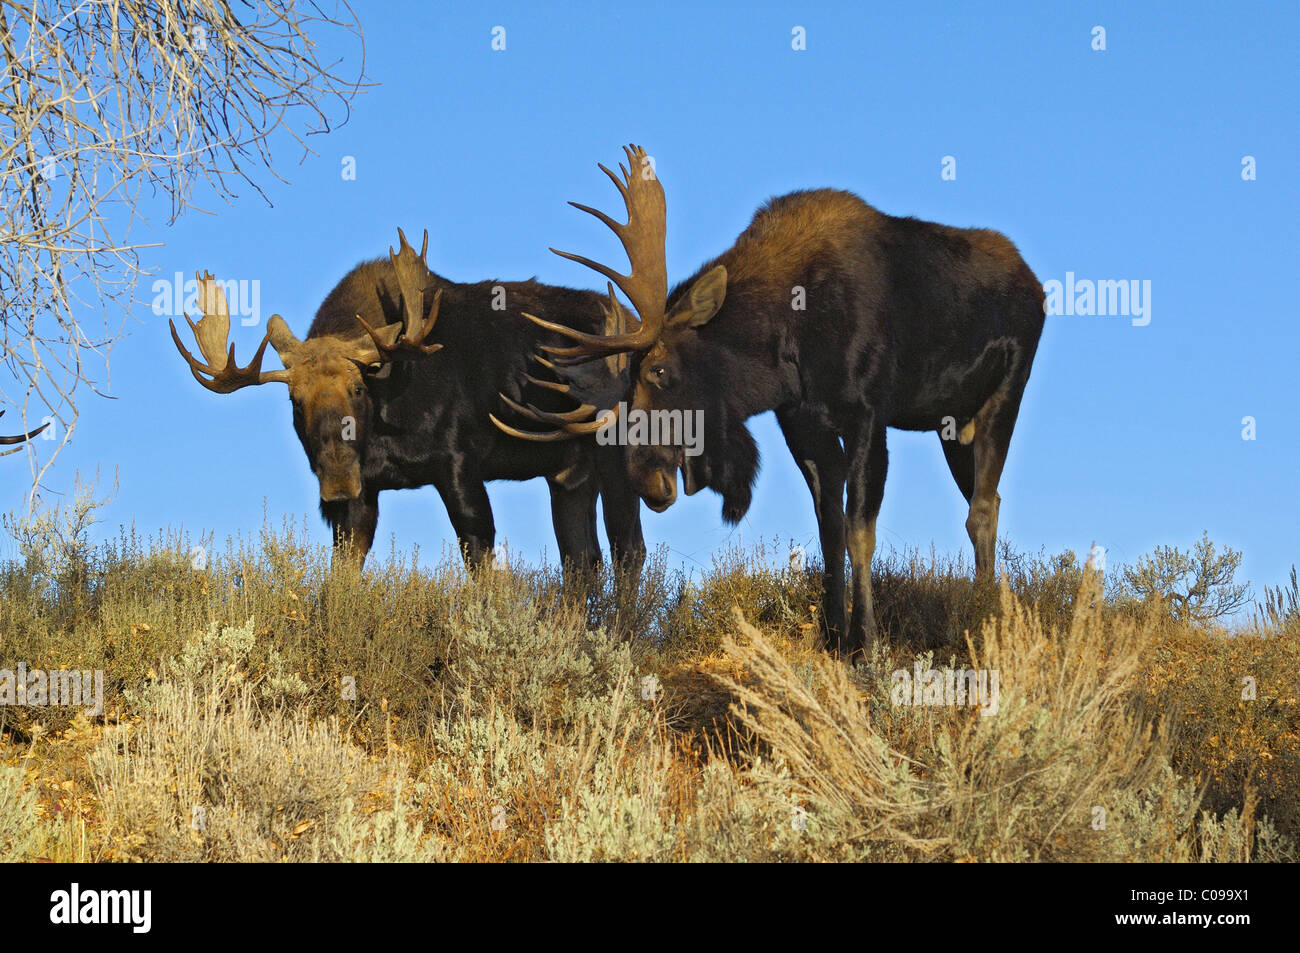 Bull Moose sparring. - Stock Image